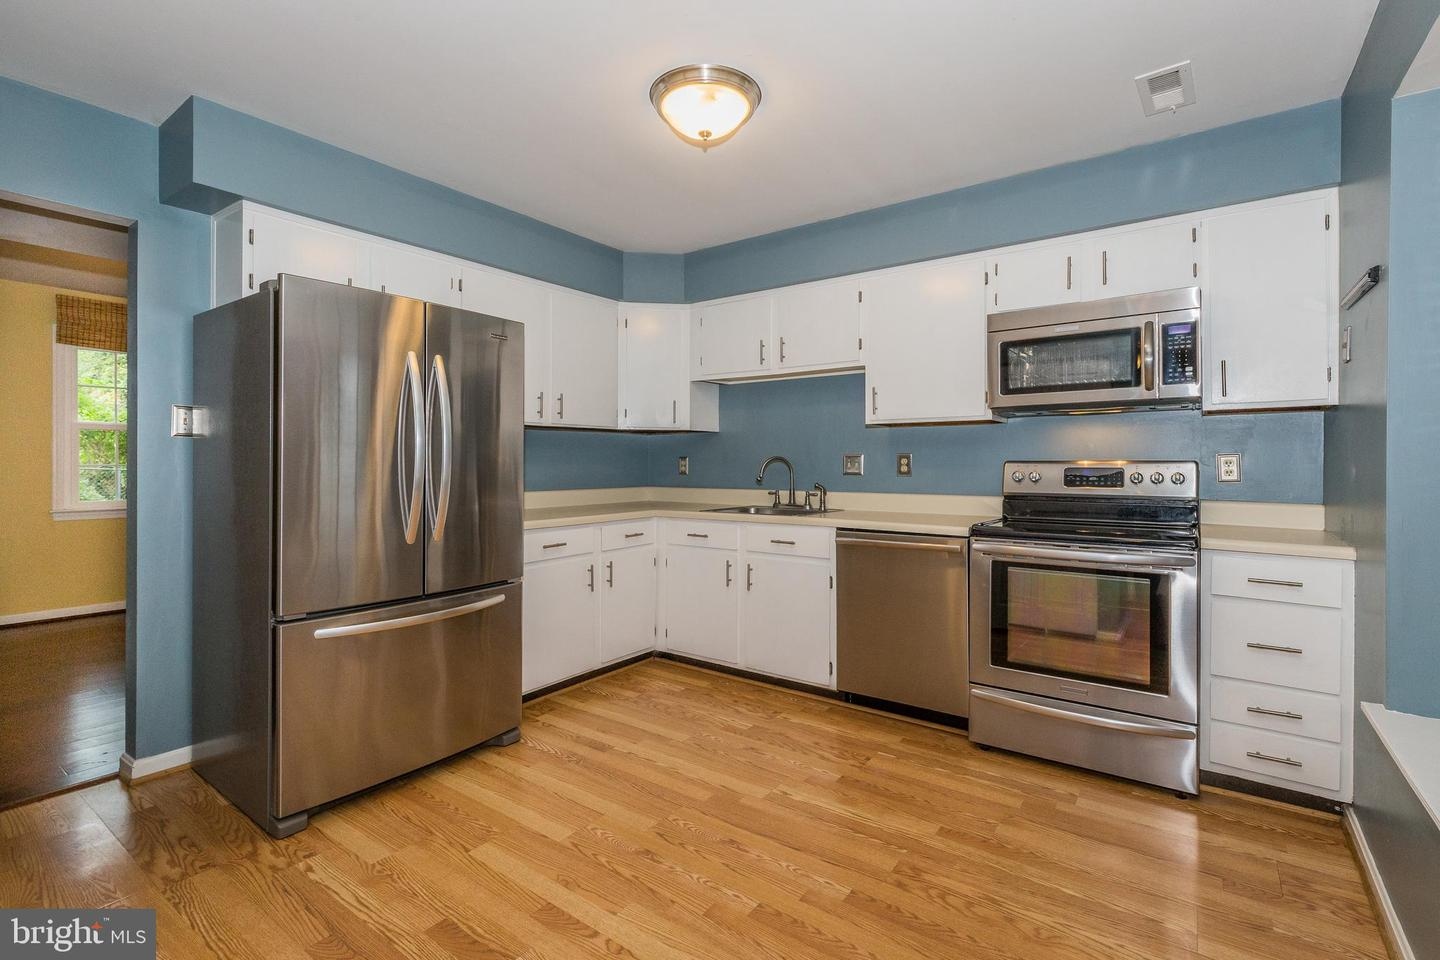 Additional photo for property listing at 179 S Southwood Ave Annapolis, Maryland 21401 United States